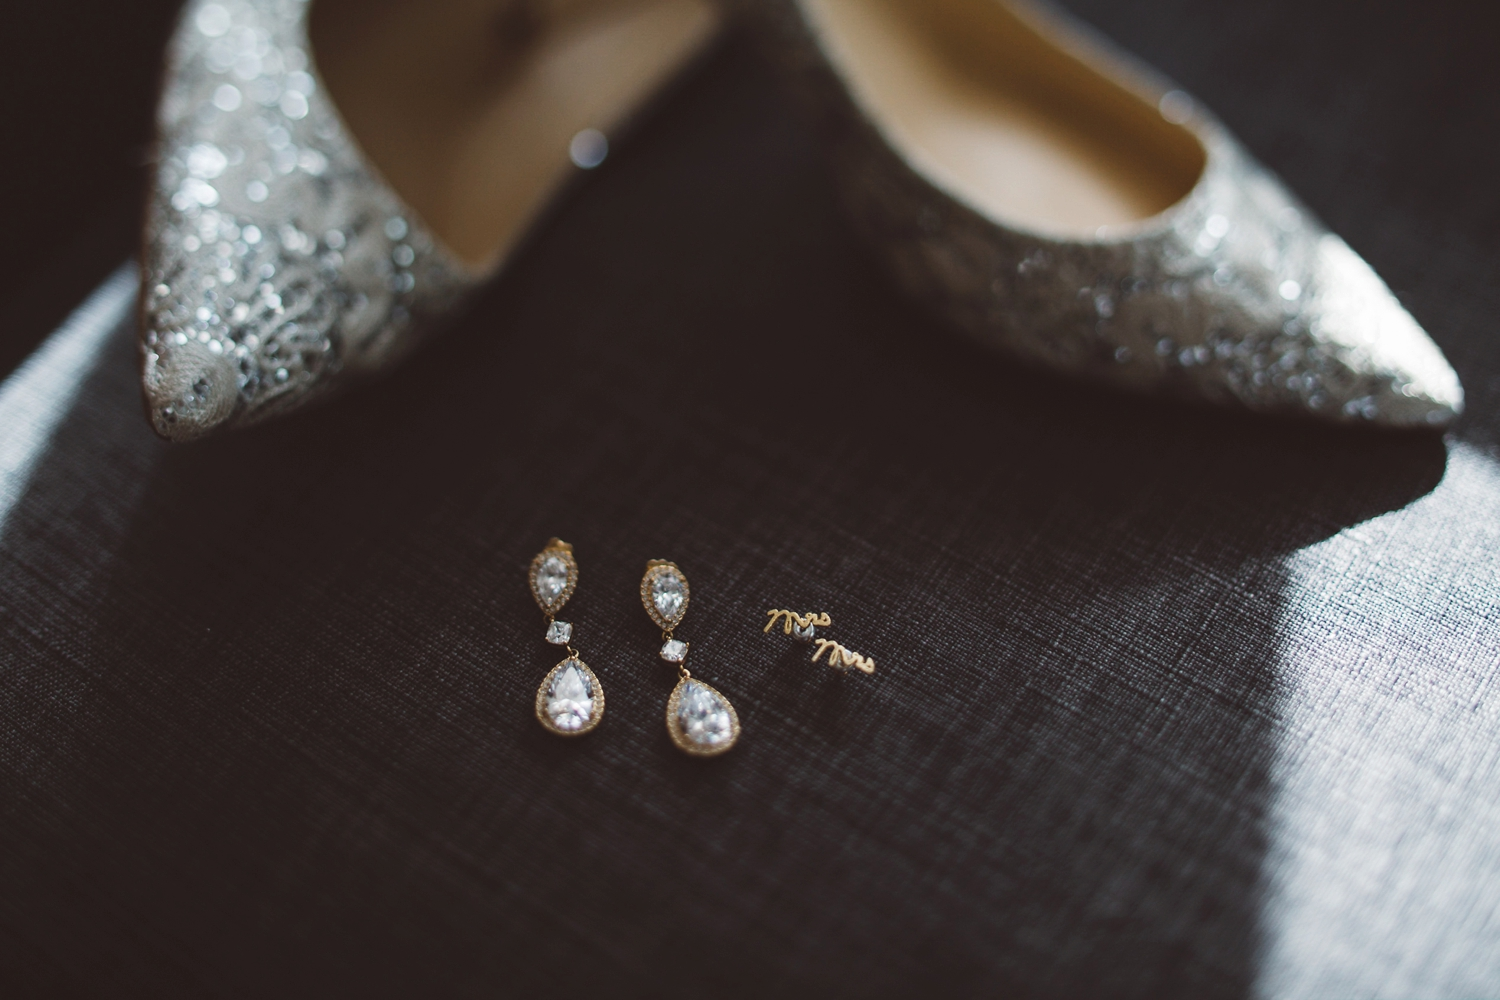 mr and mrs earring details for bride